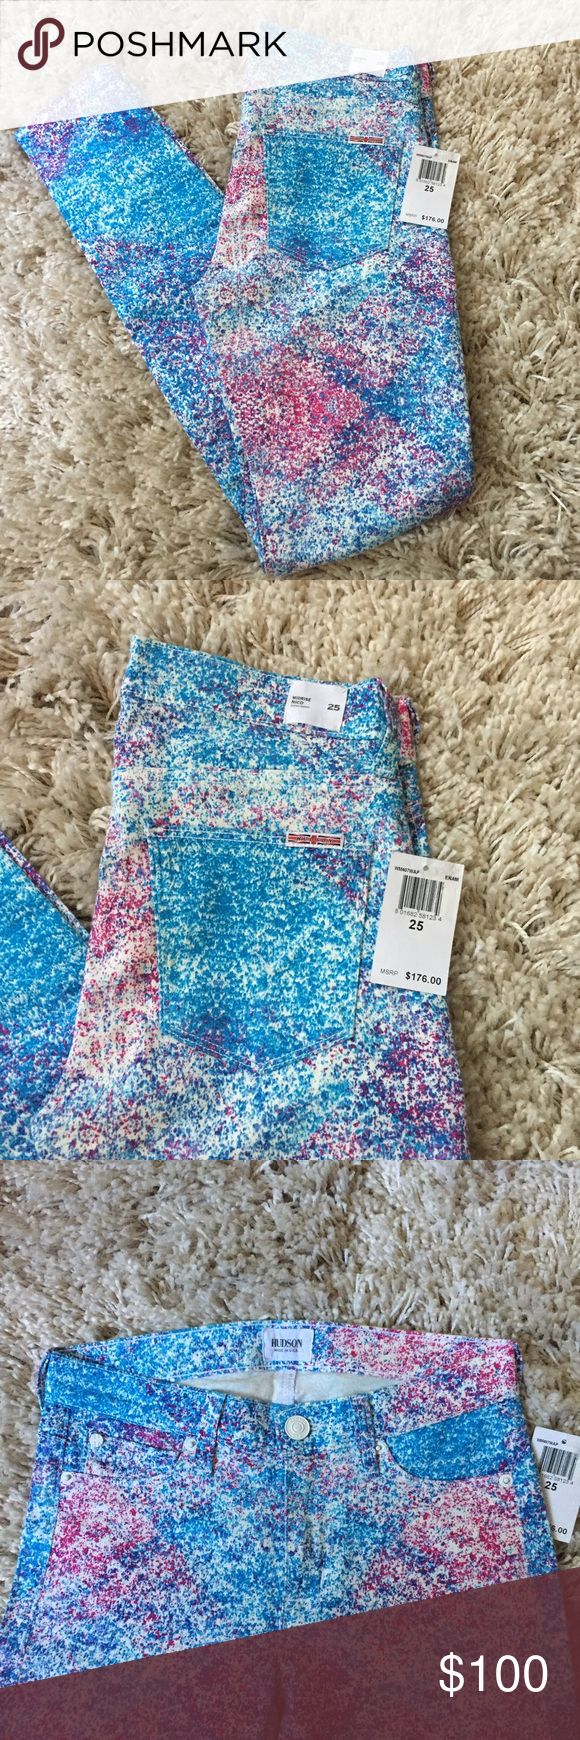 """🆕 Hudson Splatter Skinny 💕 + Inseam 28""""  + NWT  + Skinny fit 😍 + Dress up or down, perfect for fall🍂🍃  ⭐️All items are steamed cleaned and shipped within 48 hours of your purchase. ⭐️If you would like any additional photos or have any questions please let me know. ⭐️Sorry, no trades. But will listen to ALL fair offers. Thanks for shopping! Hudson Jeans Jeans Skinny"""